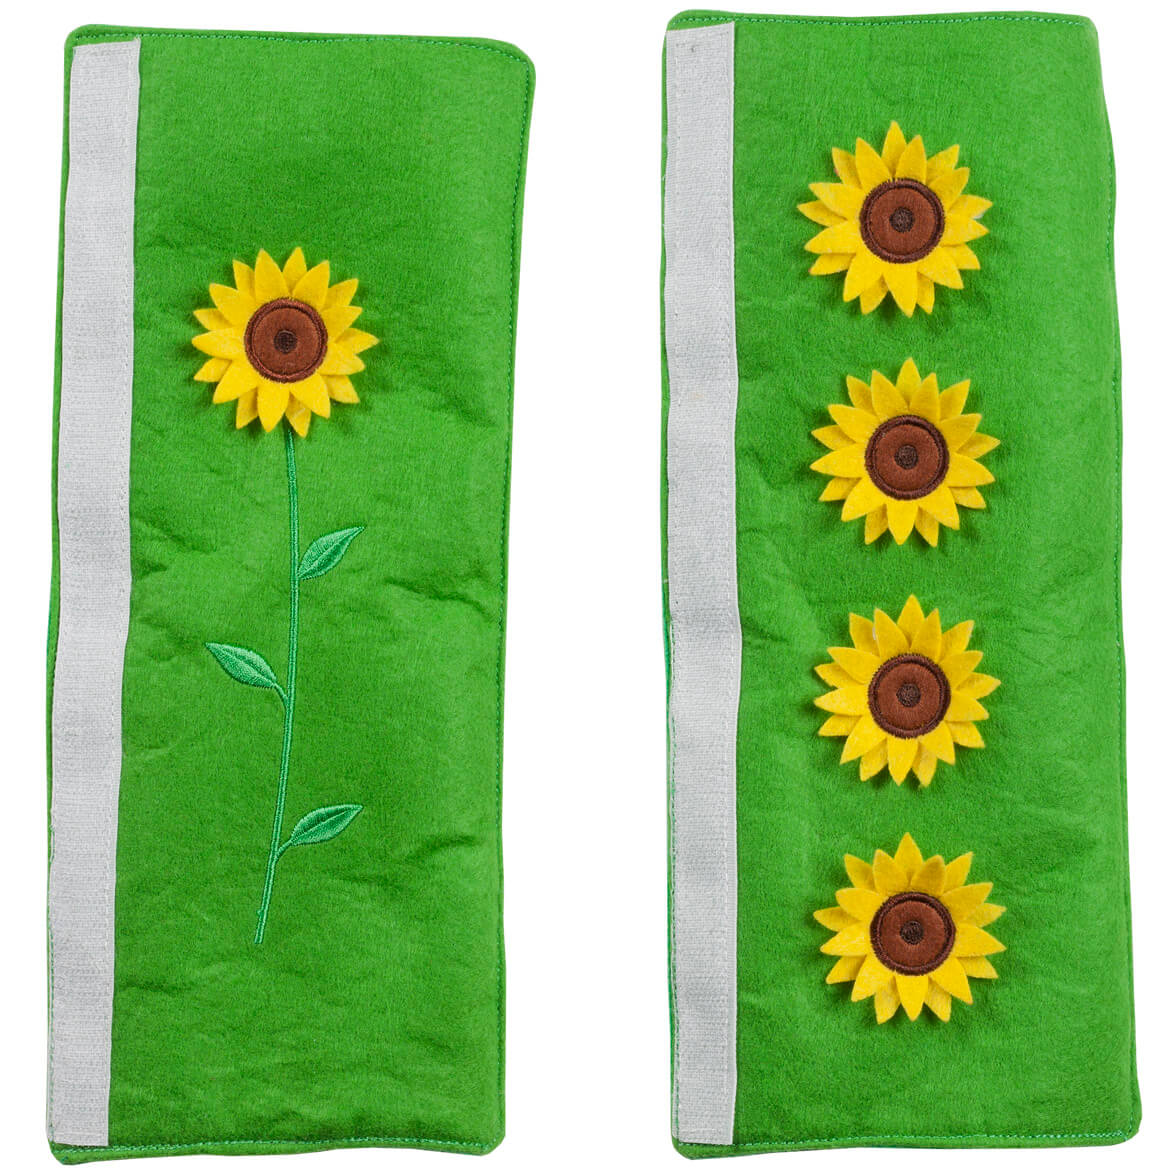 Sunflower Appliance Handle Covers Set of 3